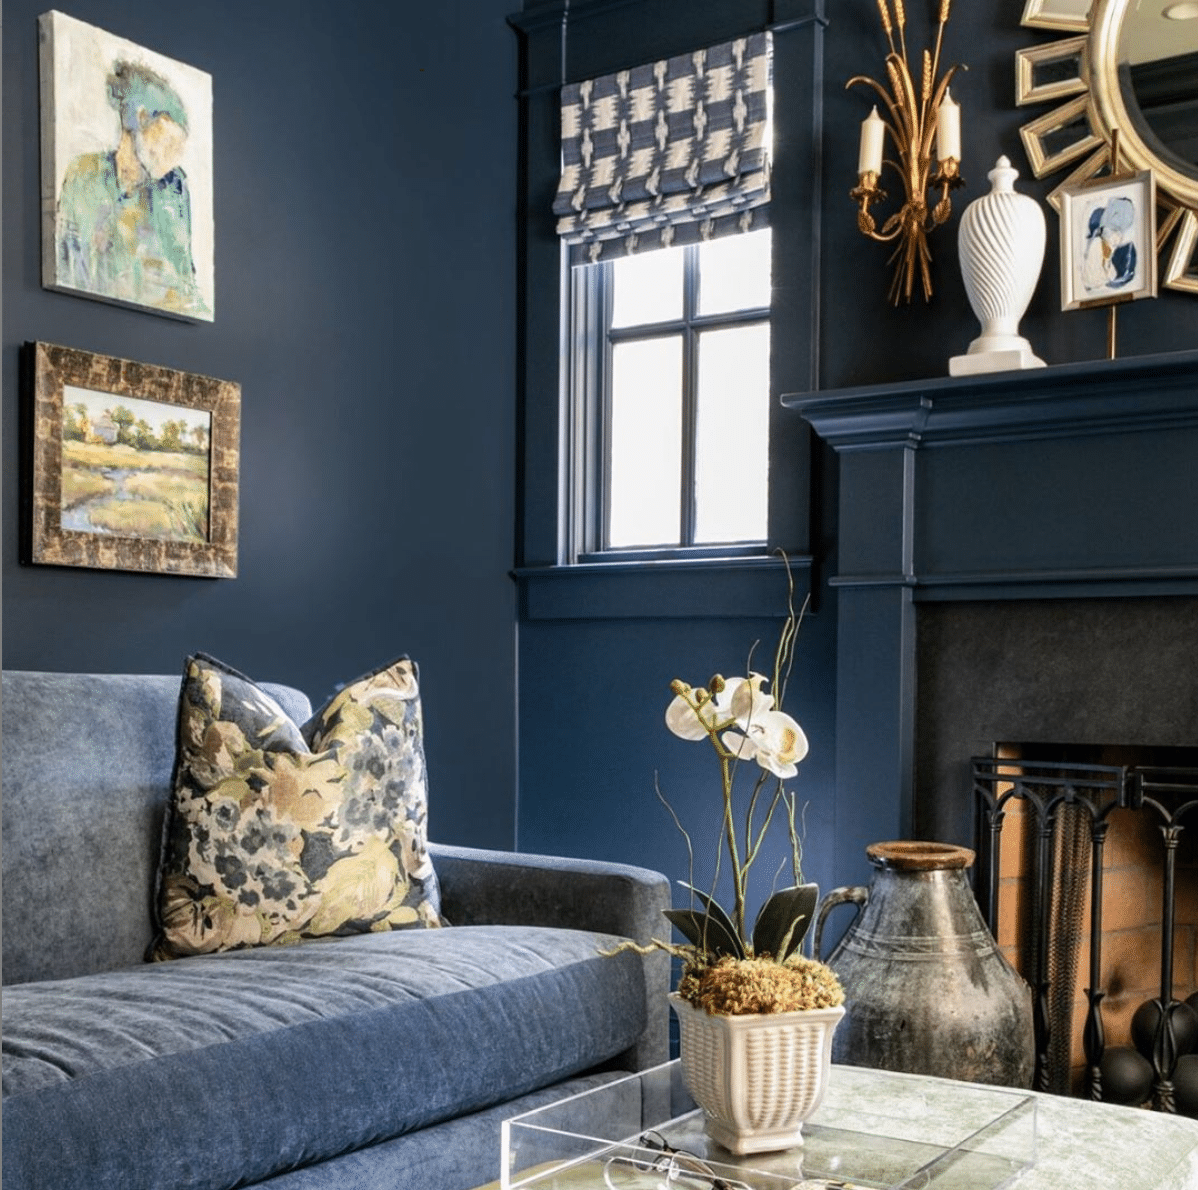 best sherwin williams blue paint colors of 2020 on paint colors by sherwin williams id=62150